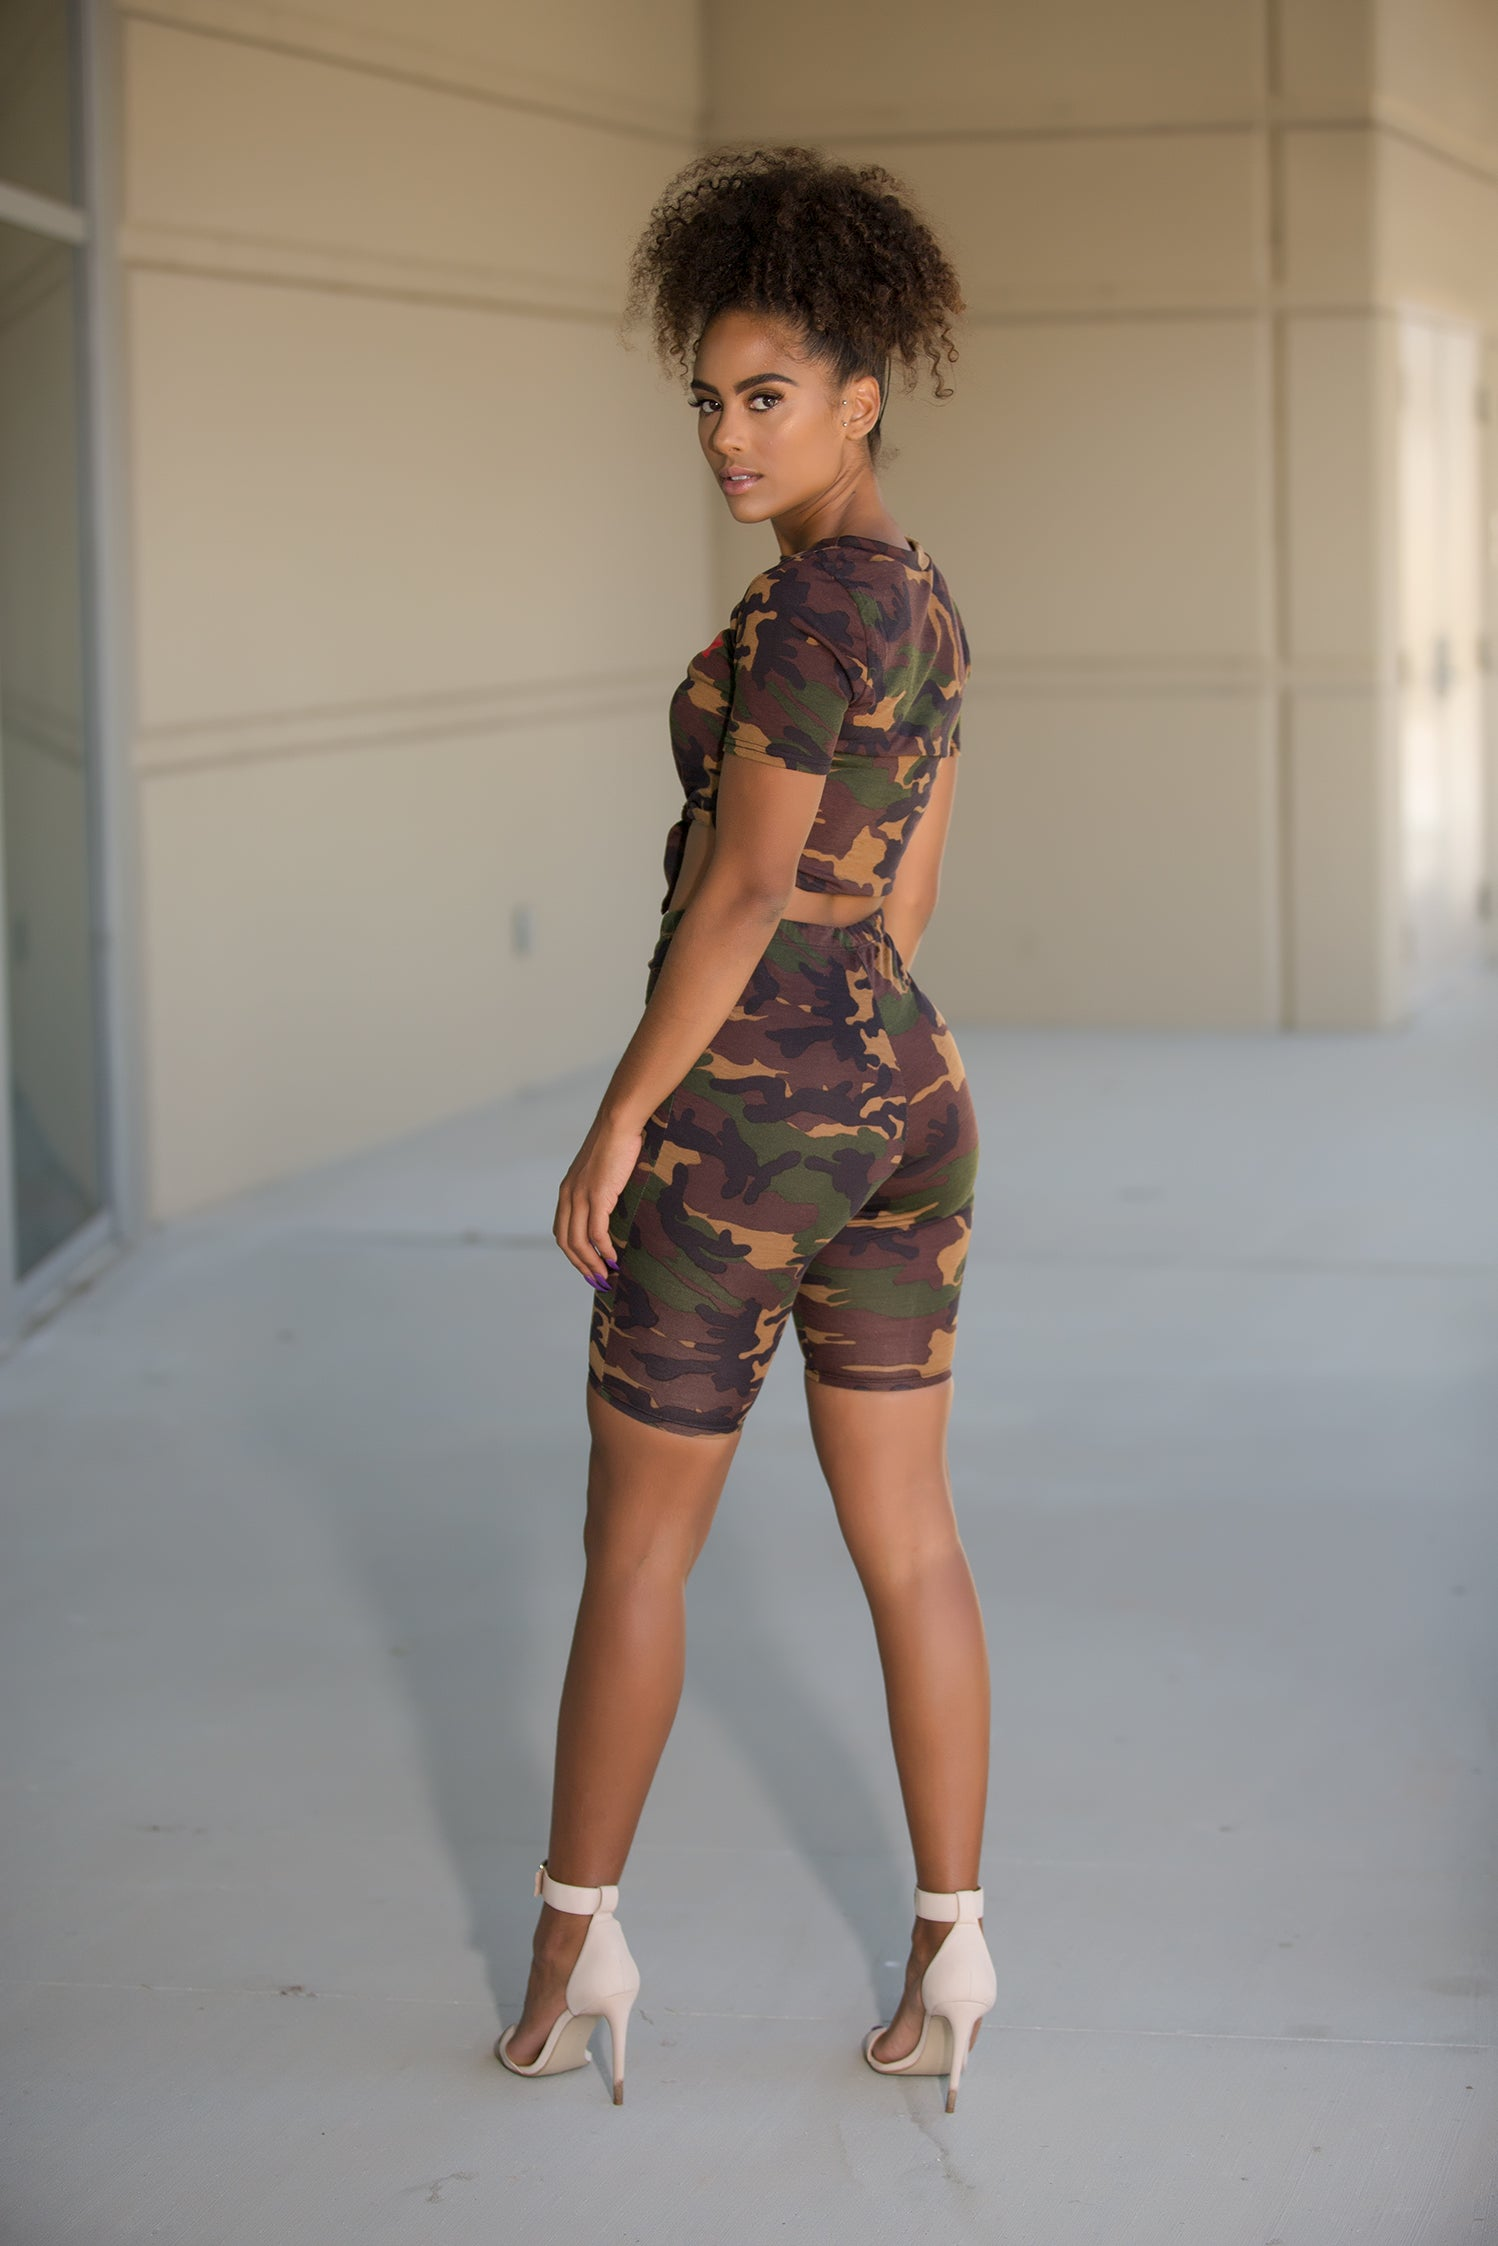 0cbaf0d5ca ... Lilly - Super Babe Camo Crop Top Shorts Set - Semai House Of fashion ...